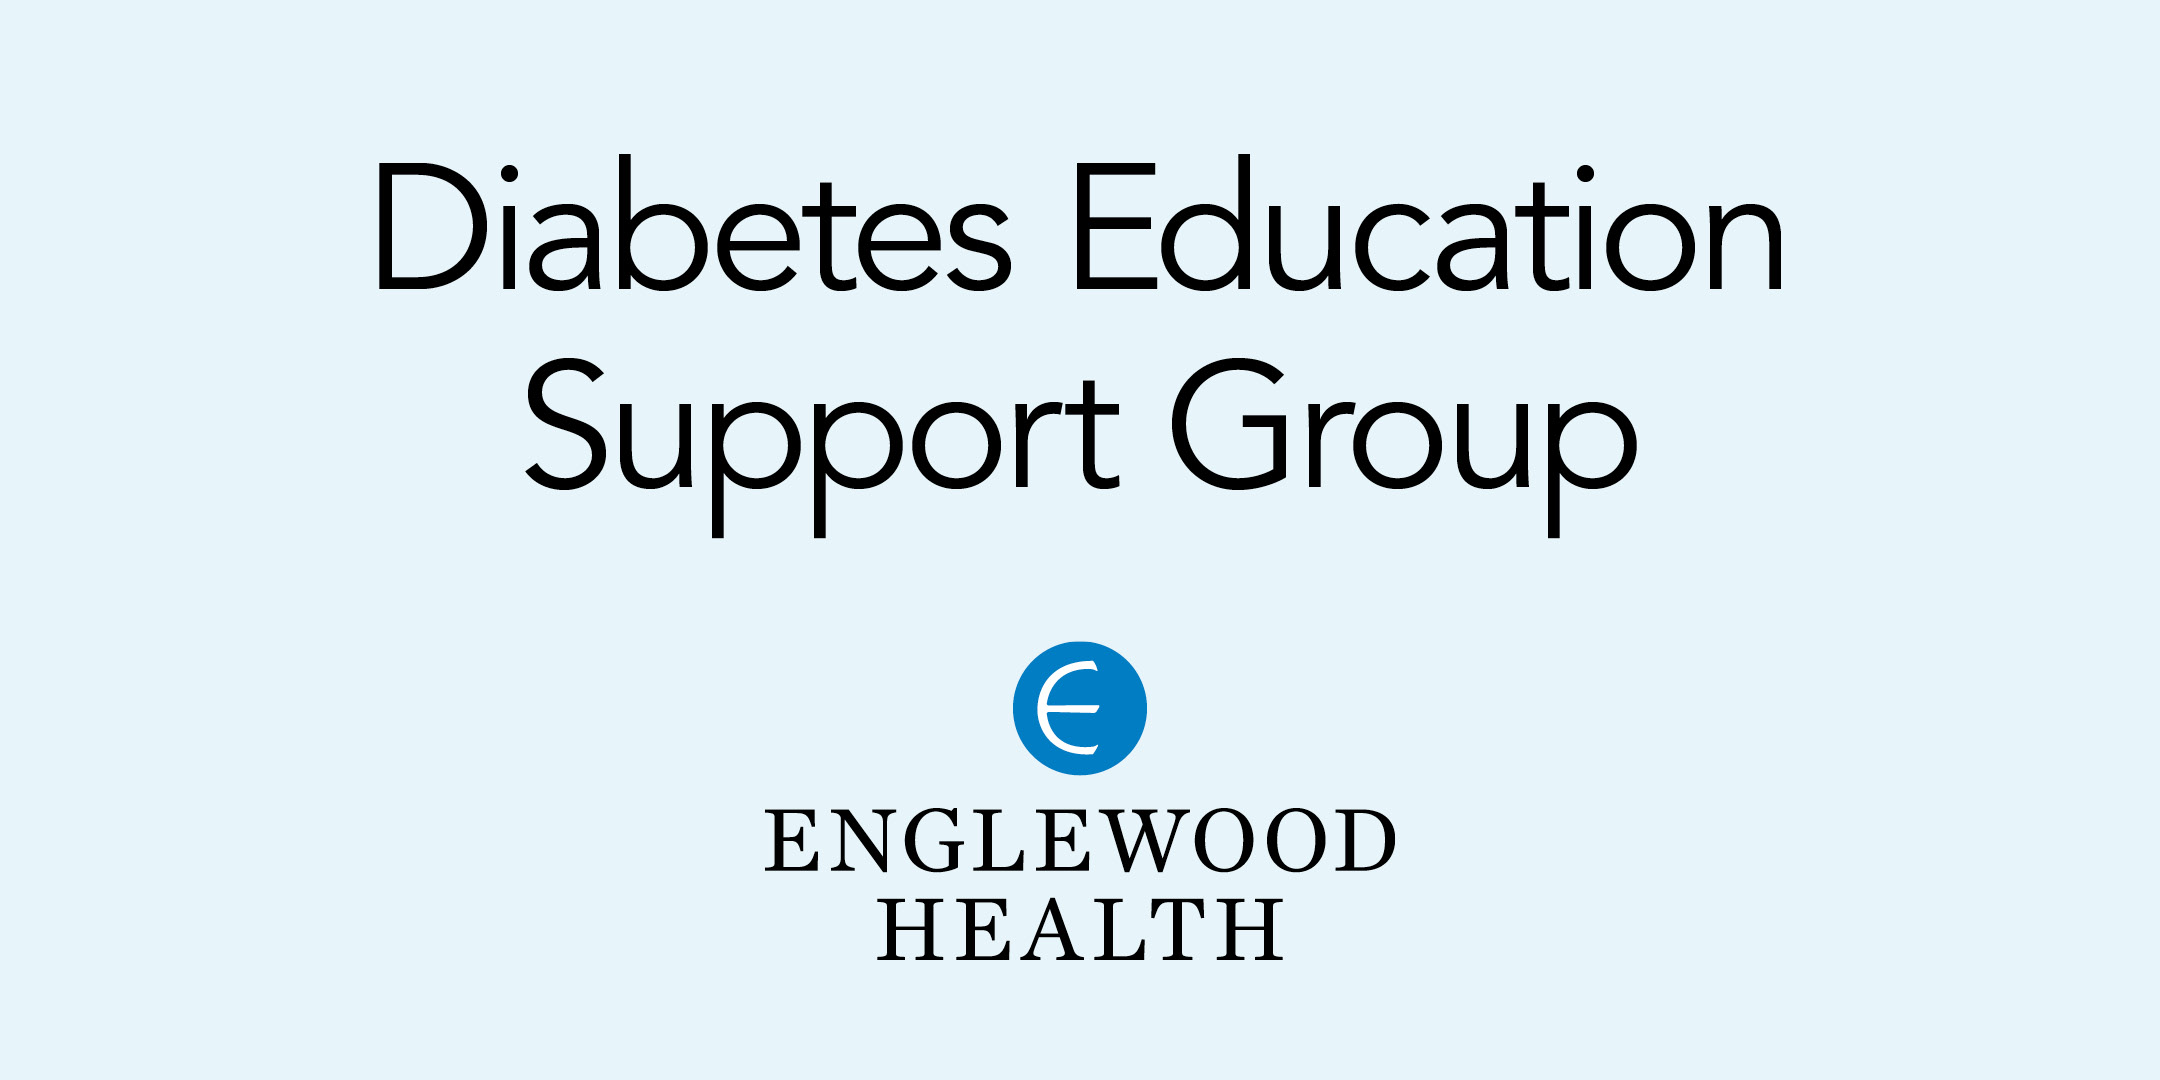 Diabetes Education Support Group